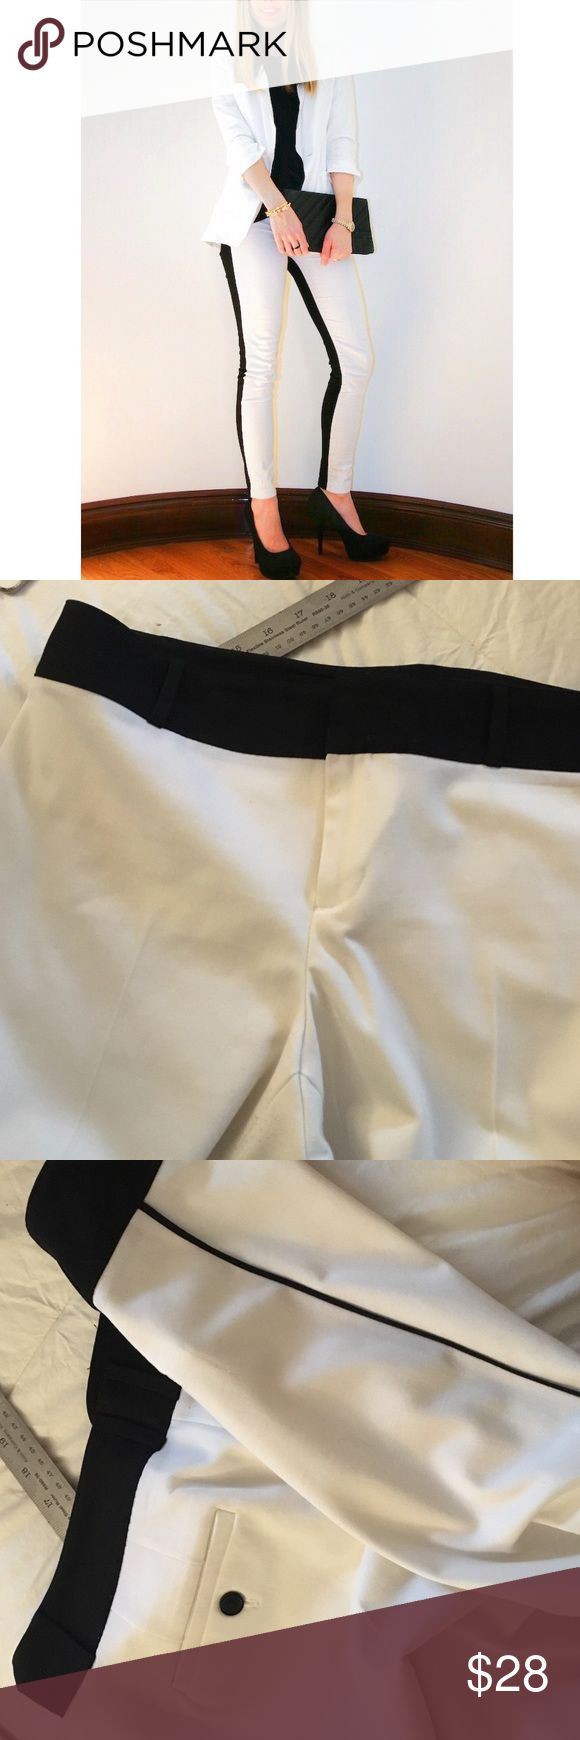 Black and White Tuxedo Pants by Calvin Klein These tuxedo pants feature a piped trim and 2 front pockets. Calvin Klein Women's Slim Fit Piped Tuxedo Pants. Calvin Klein Pants